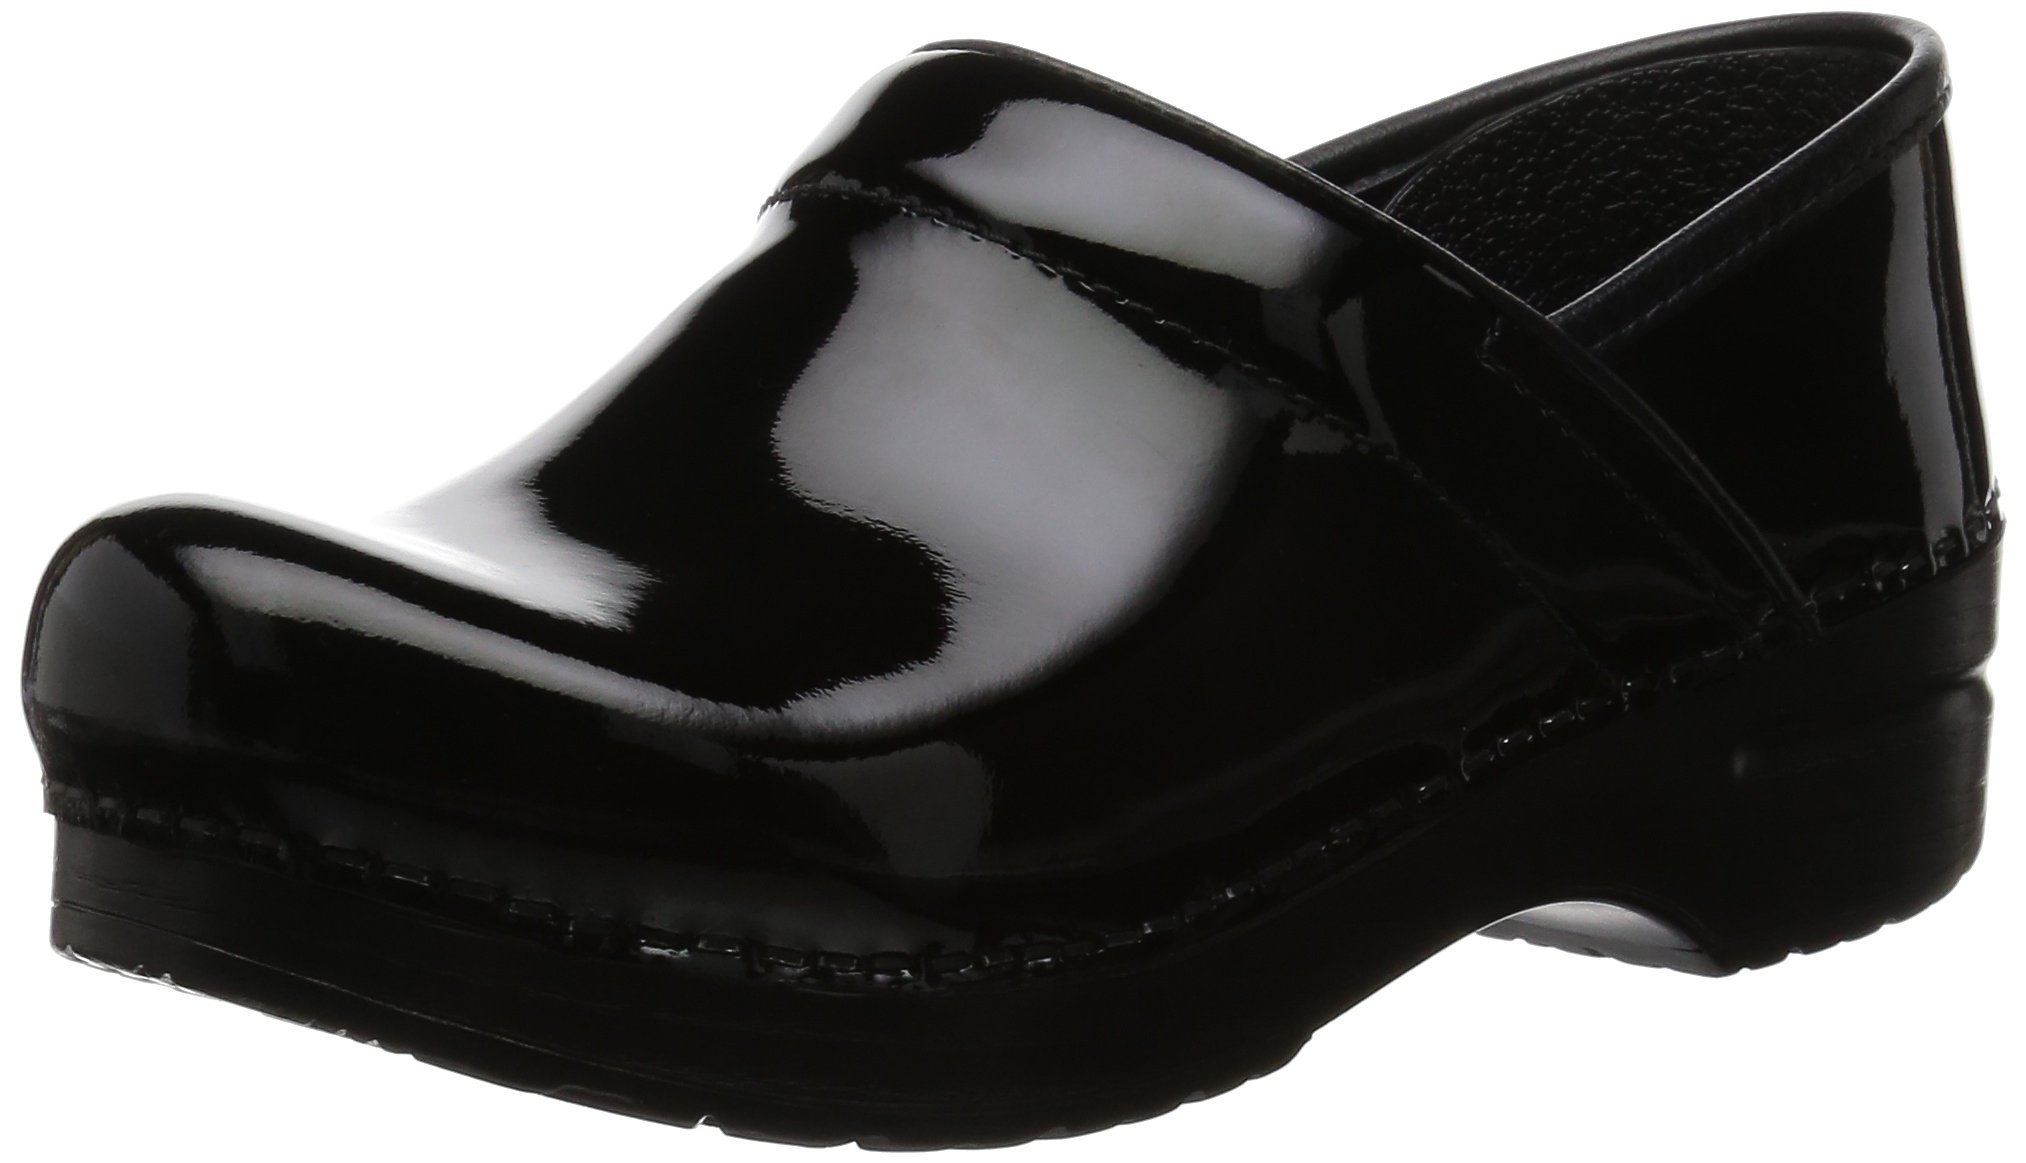 Dansko Unisex Professional Black Patent Leather Clog/Mule 35 (US Women's 4.5-5) Regular by Dansko